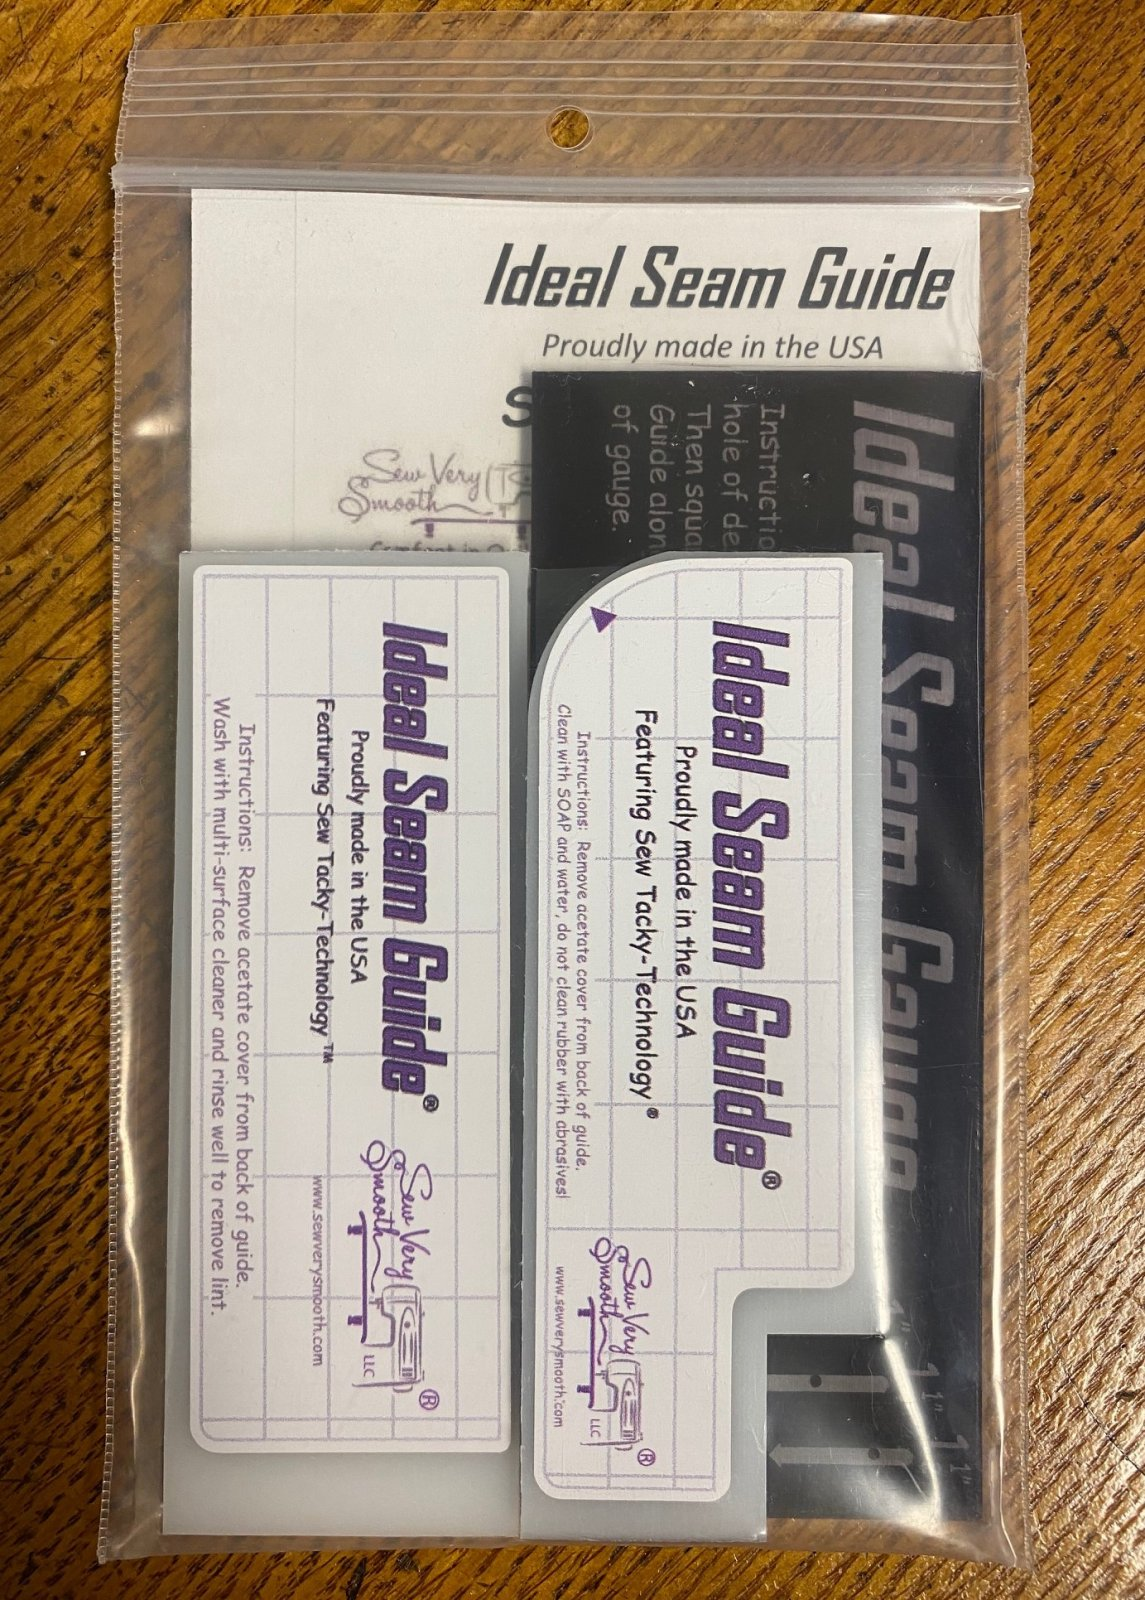 Sew Very Smooth Student Edition Ideal Seam Guide Kit